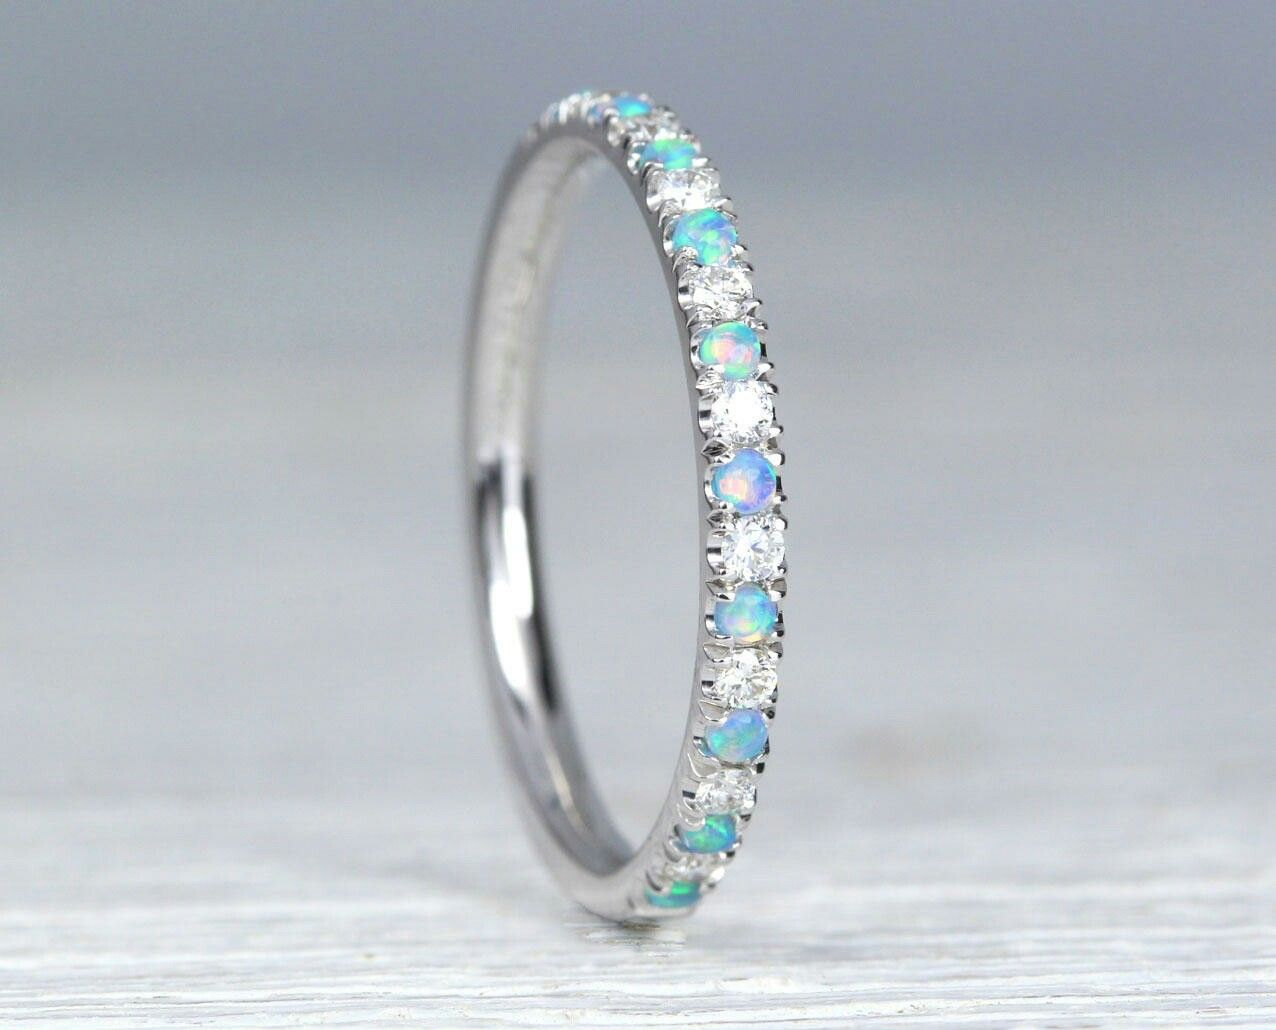 Opal And Diamond Eternity Band Opal Ring Eternity 2 Mm Wedding Band Thin Opal Wedding Ring Opal Band Opal Stacking Ring Promise Ring Opal Wedding Rings Opal Band Eternity Band Diamond